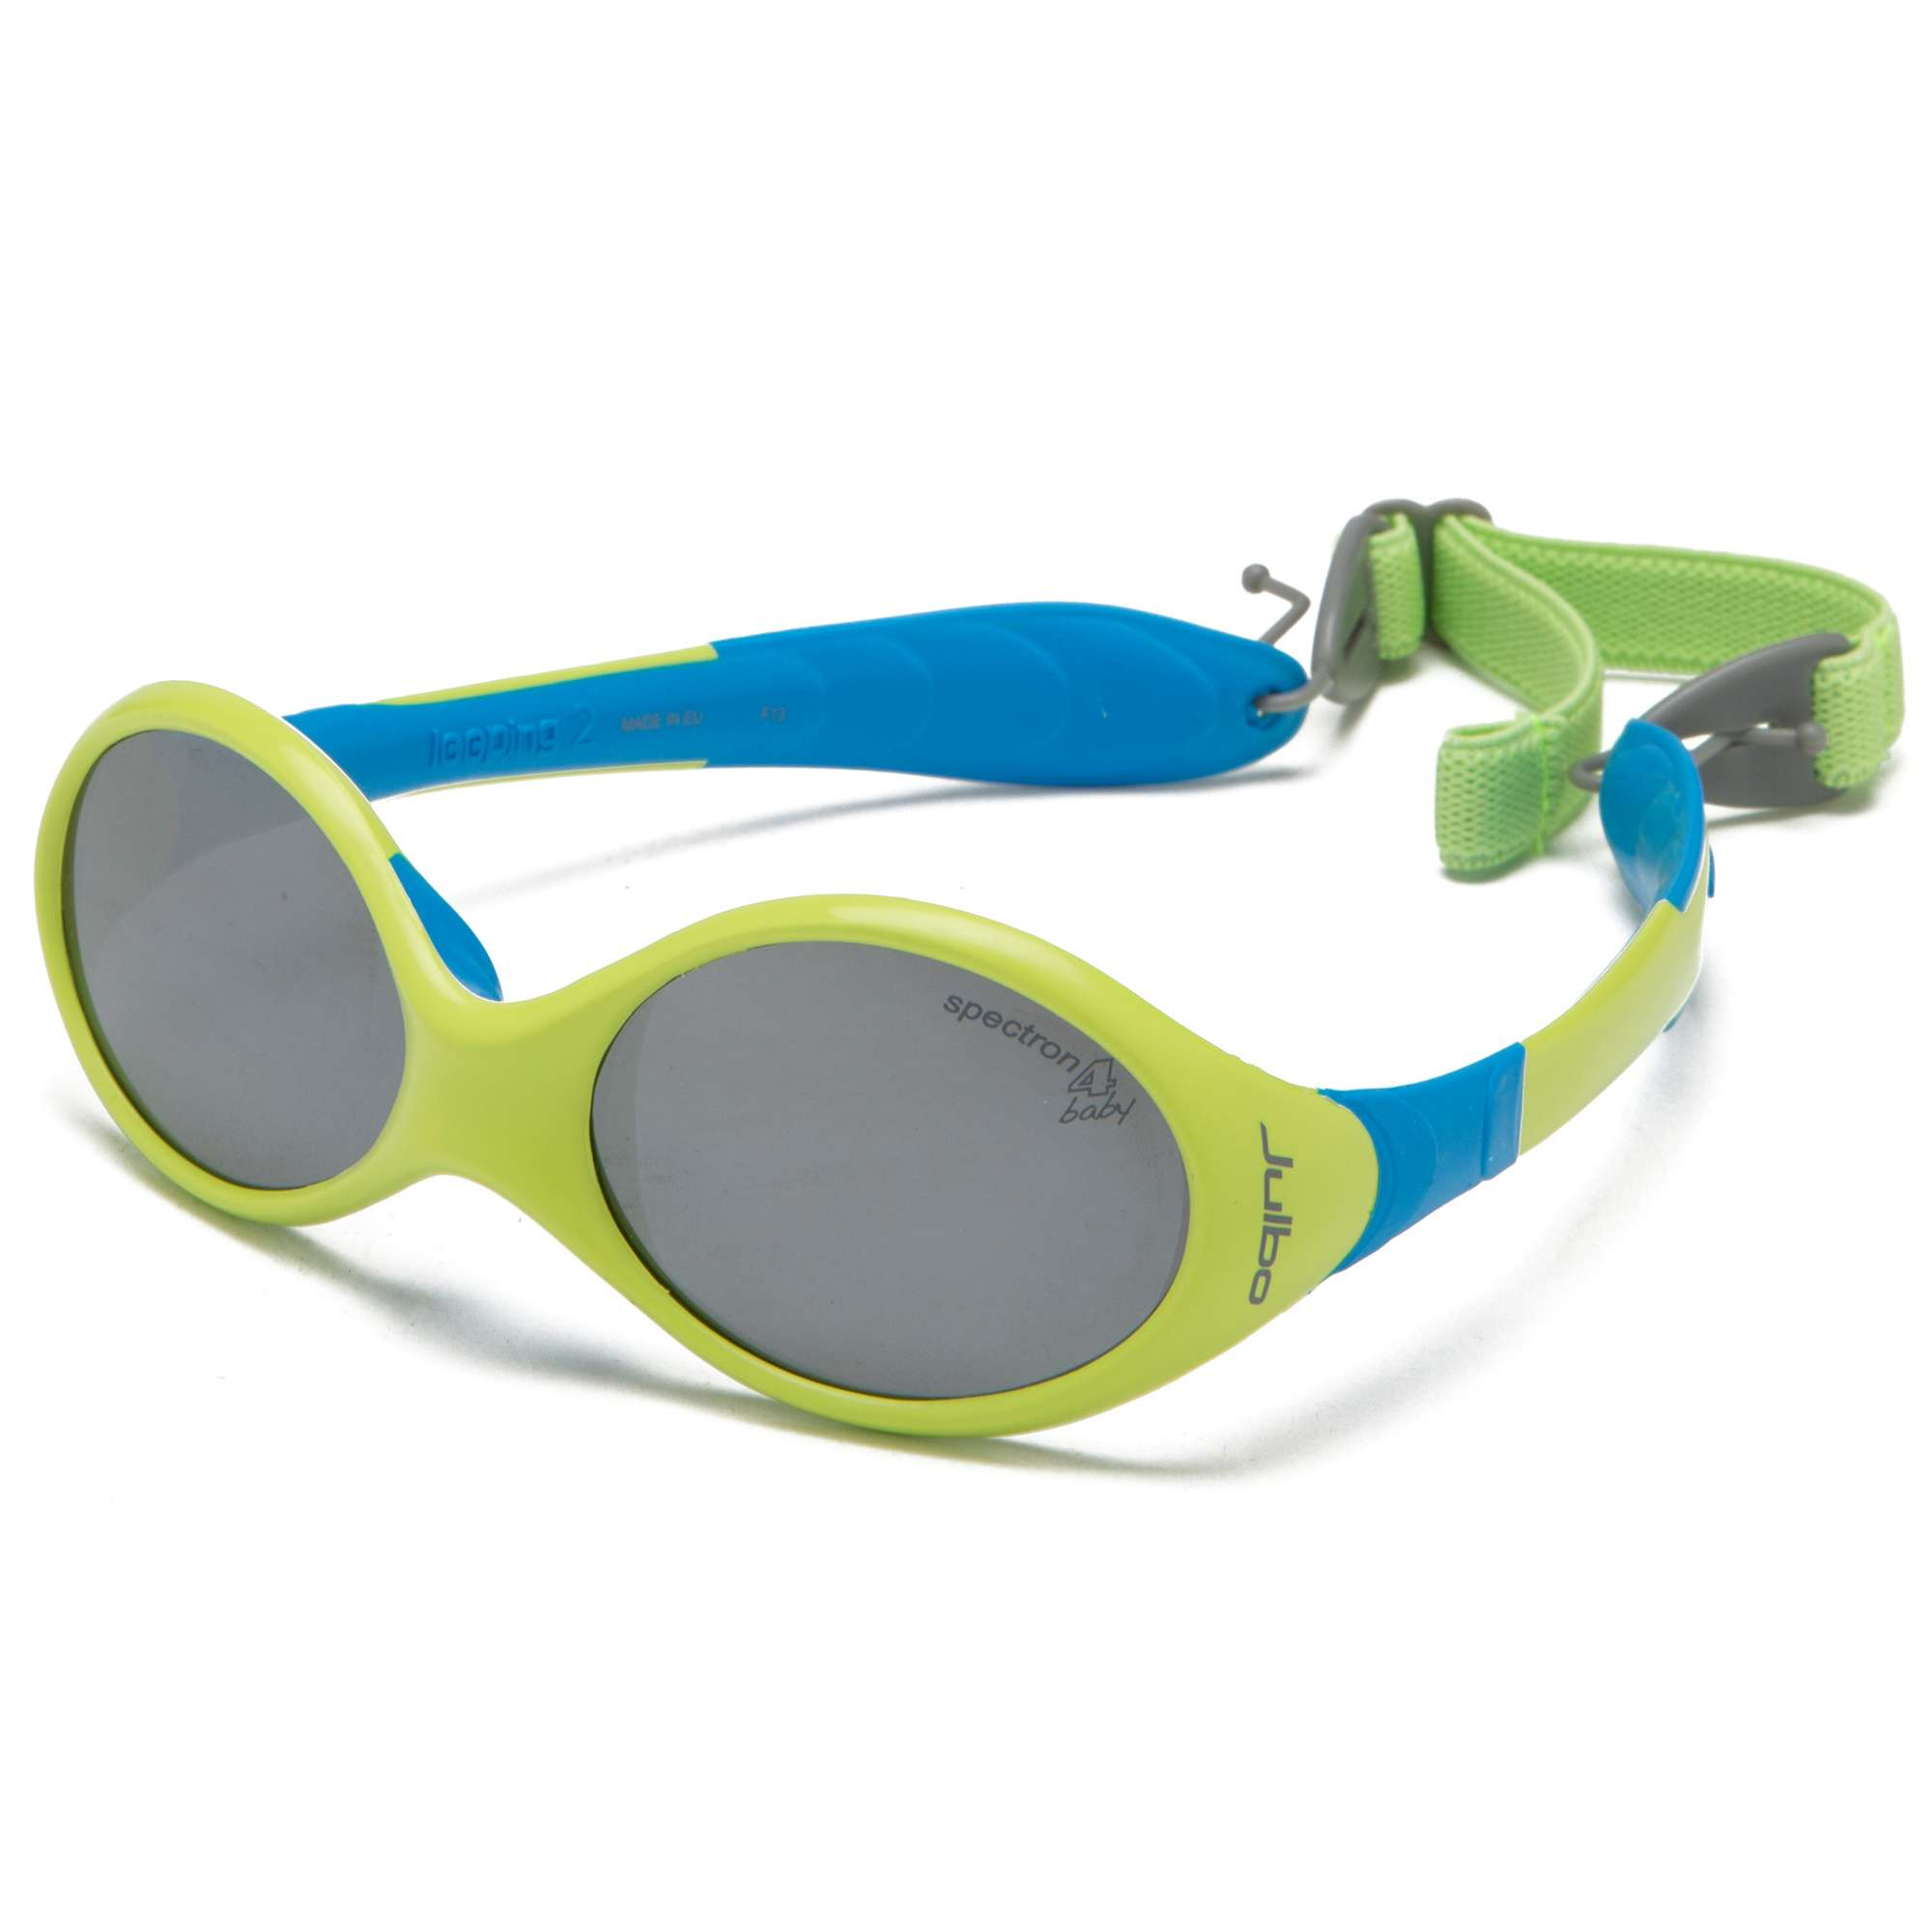 JULBO Kids' Looping 2 Sunglasses (ages 12-24 months)